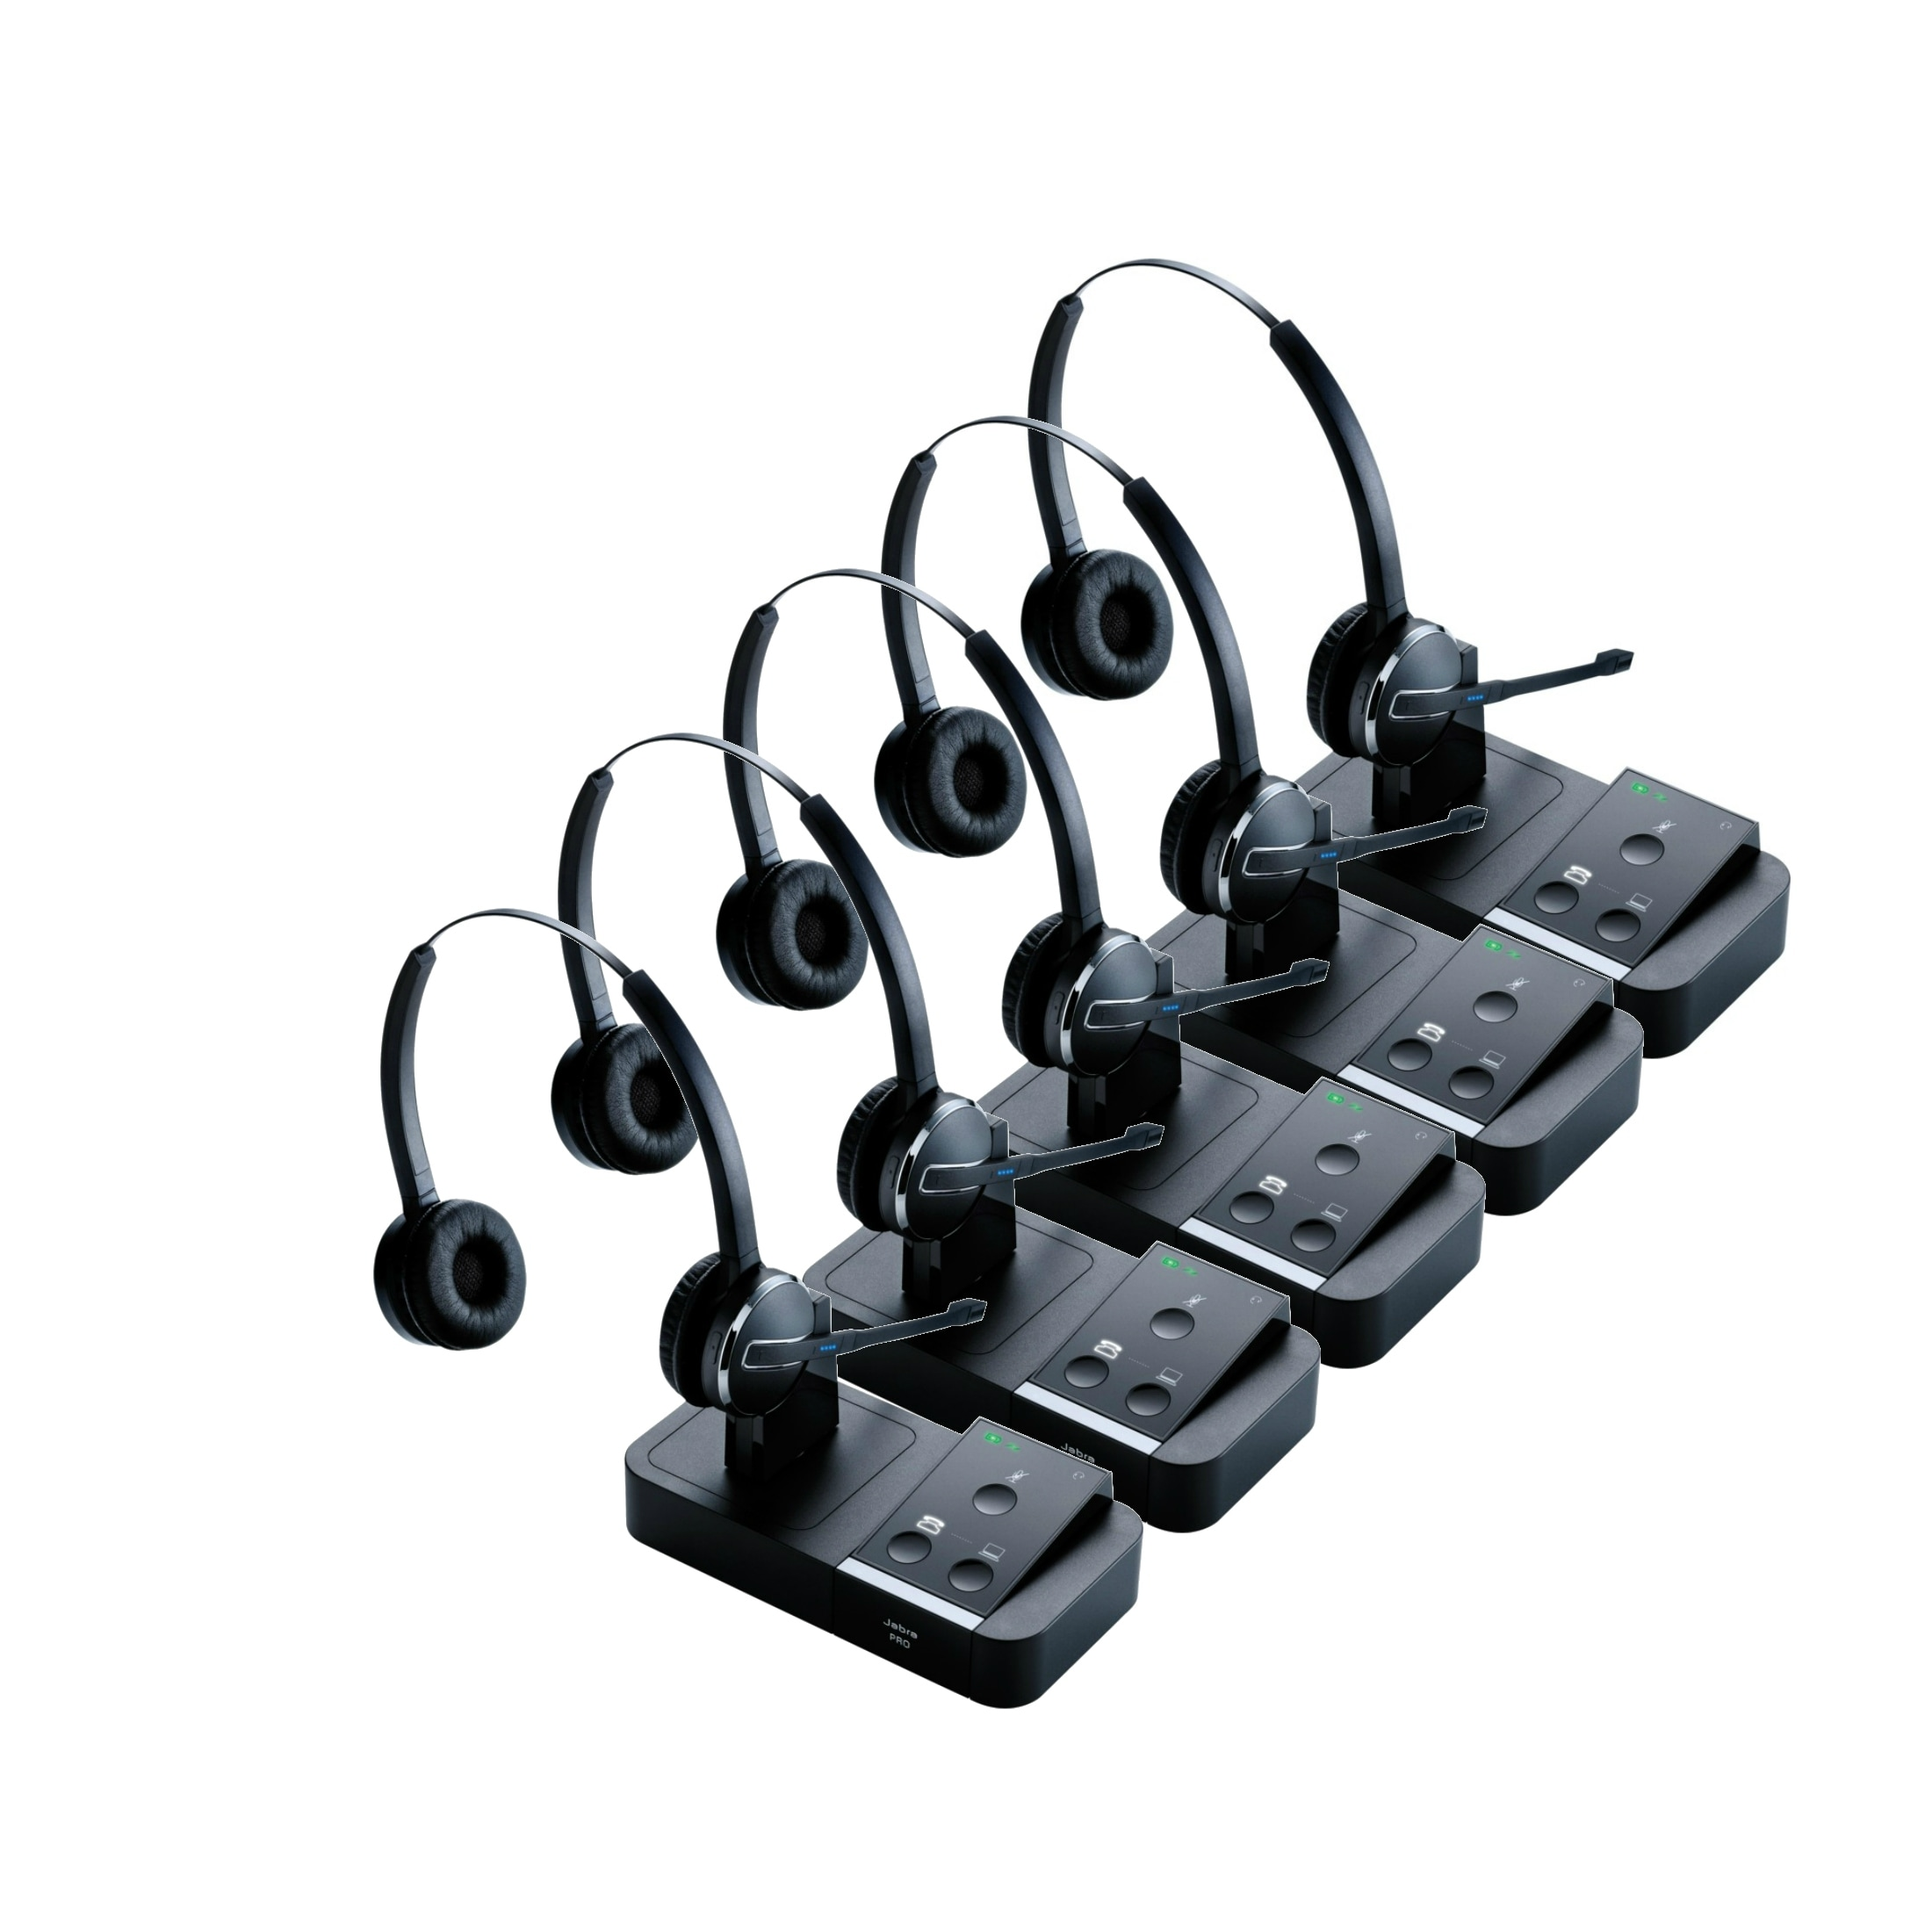 Shop Jabra Pro 9450 Mono Wireless Headset 5 Pack W Peakstop Technology Free Shipping Today Overstock 15388145